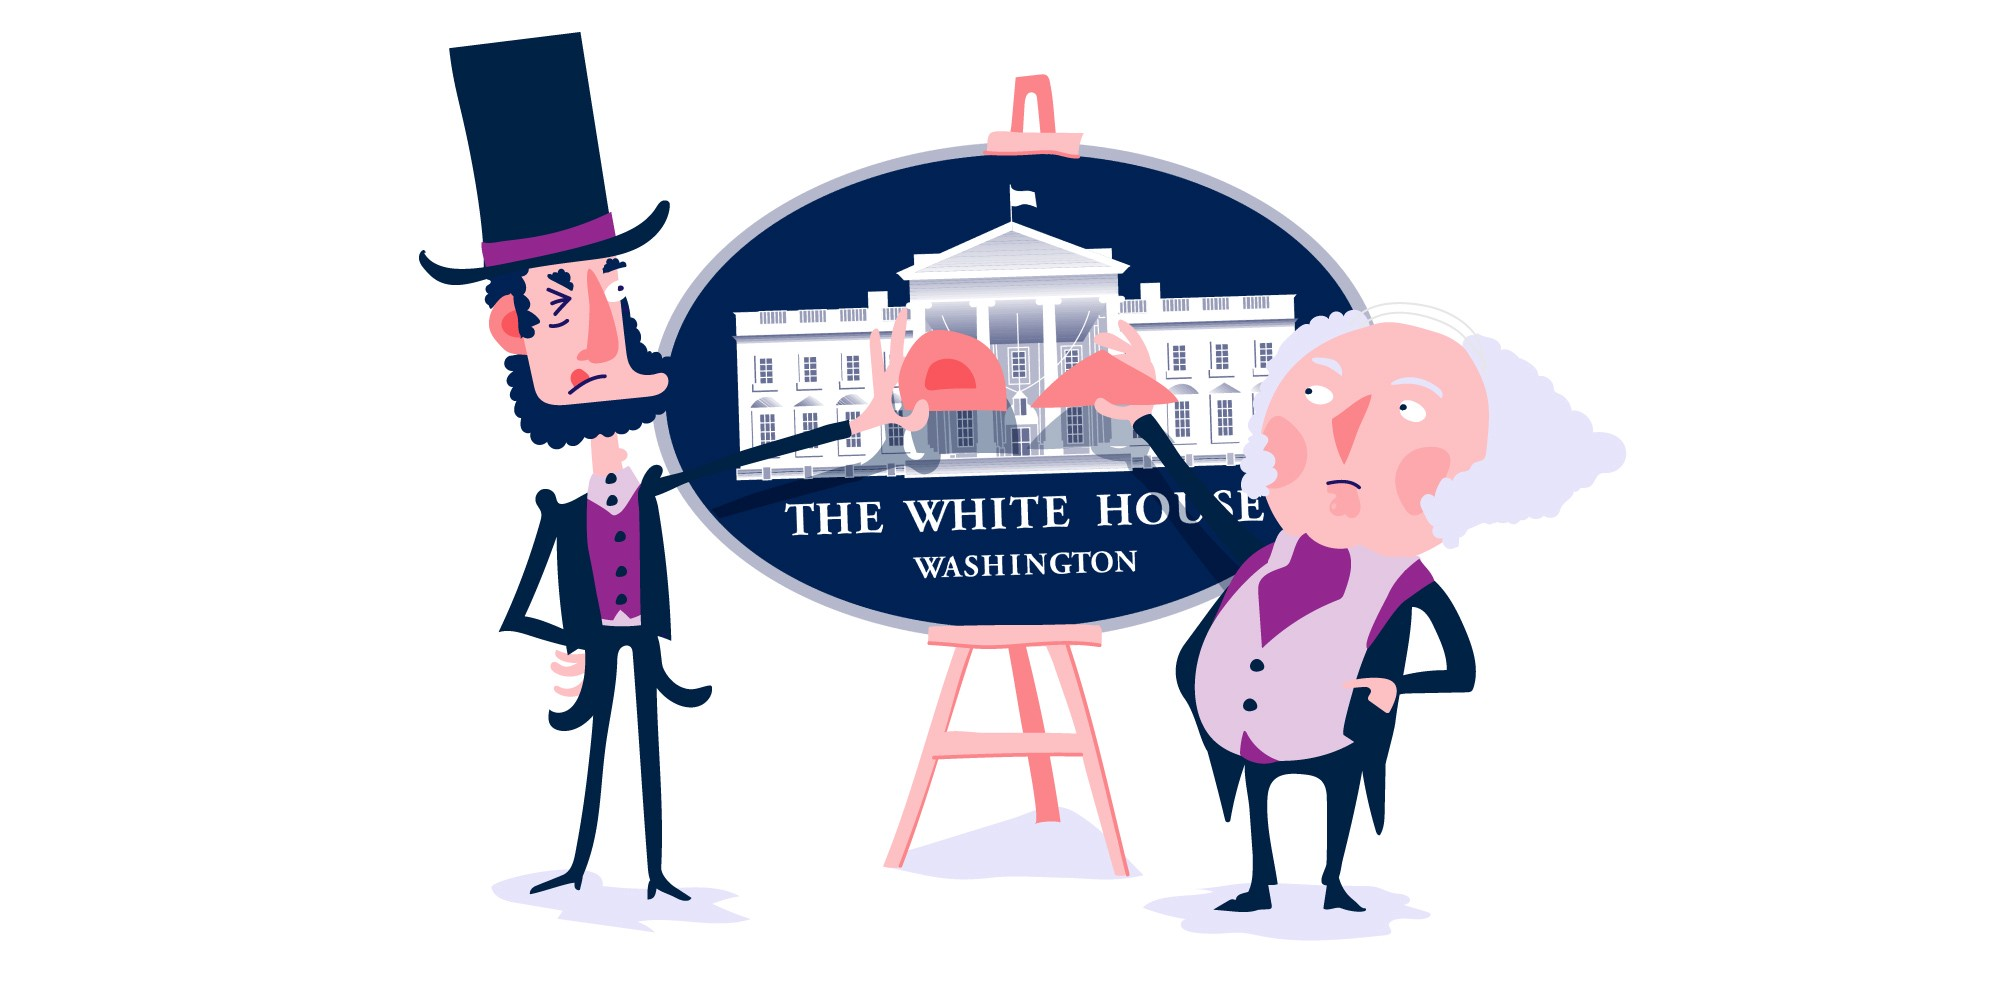 White House clipart government official Race Hey The The and